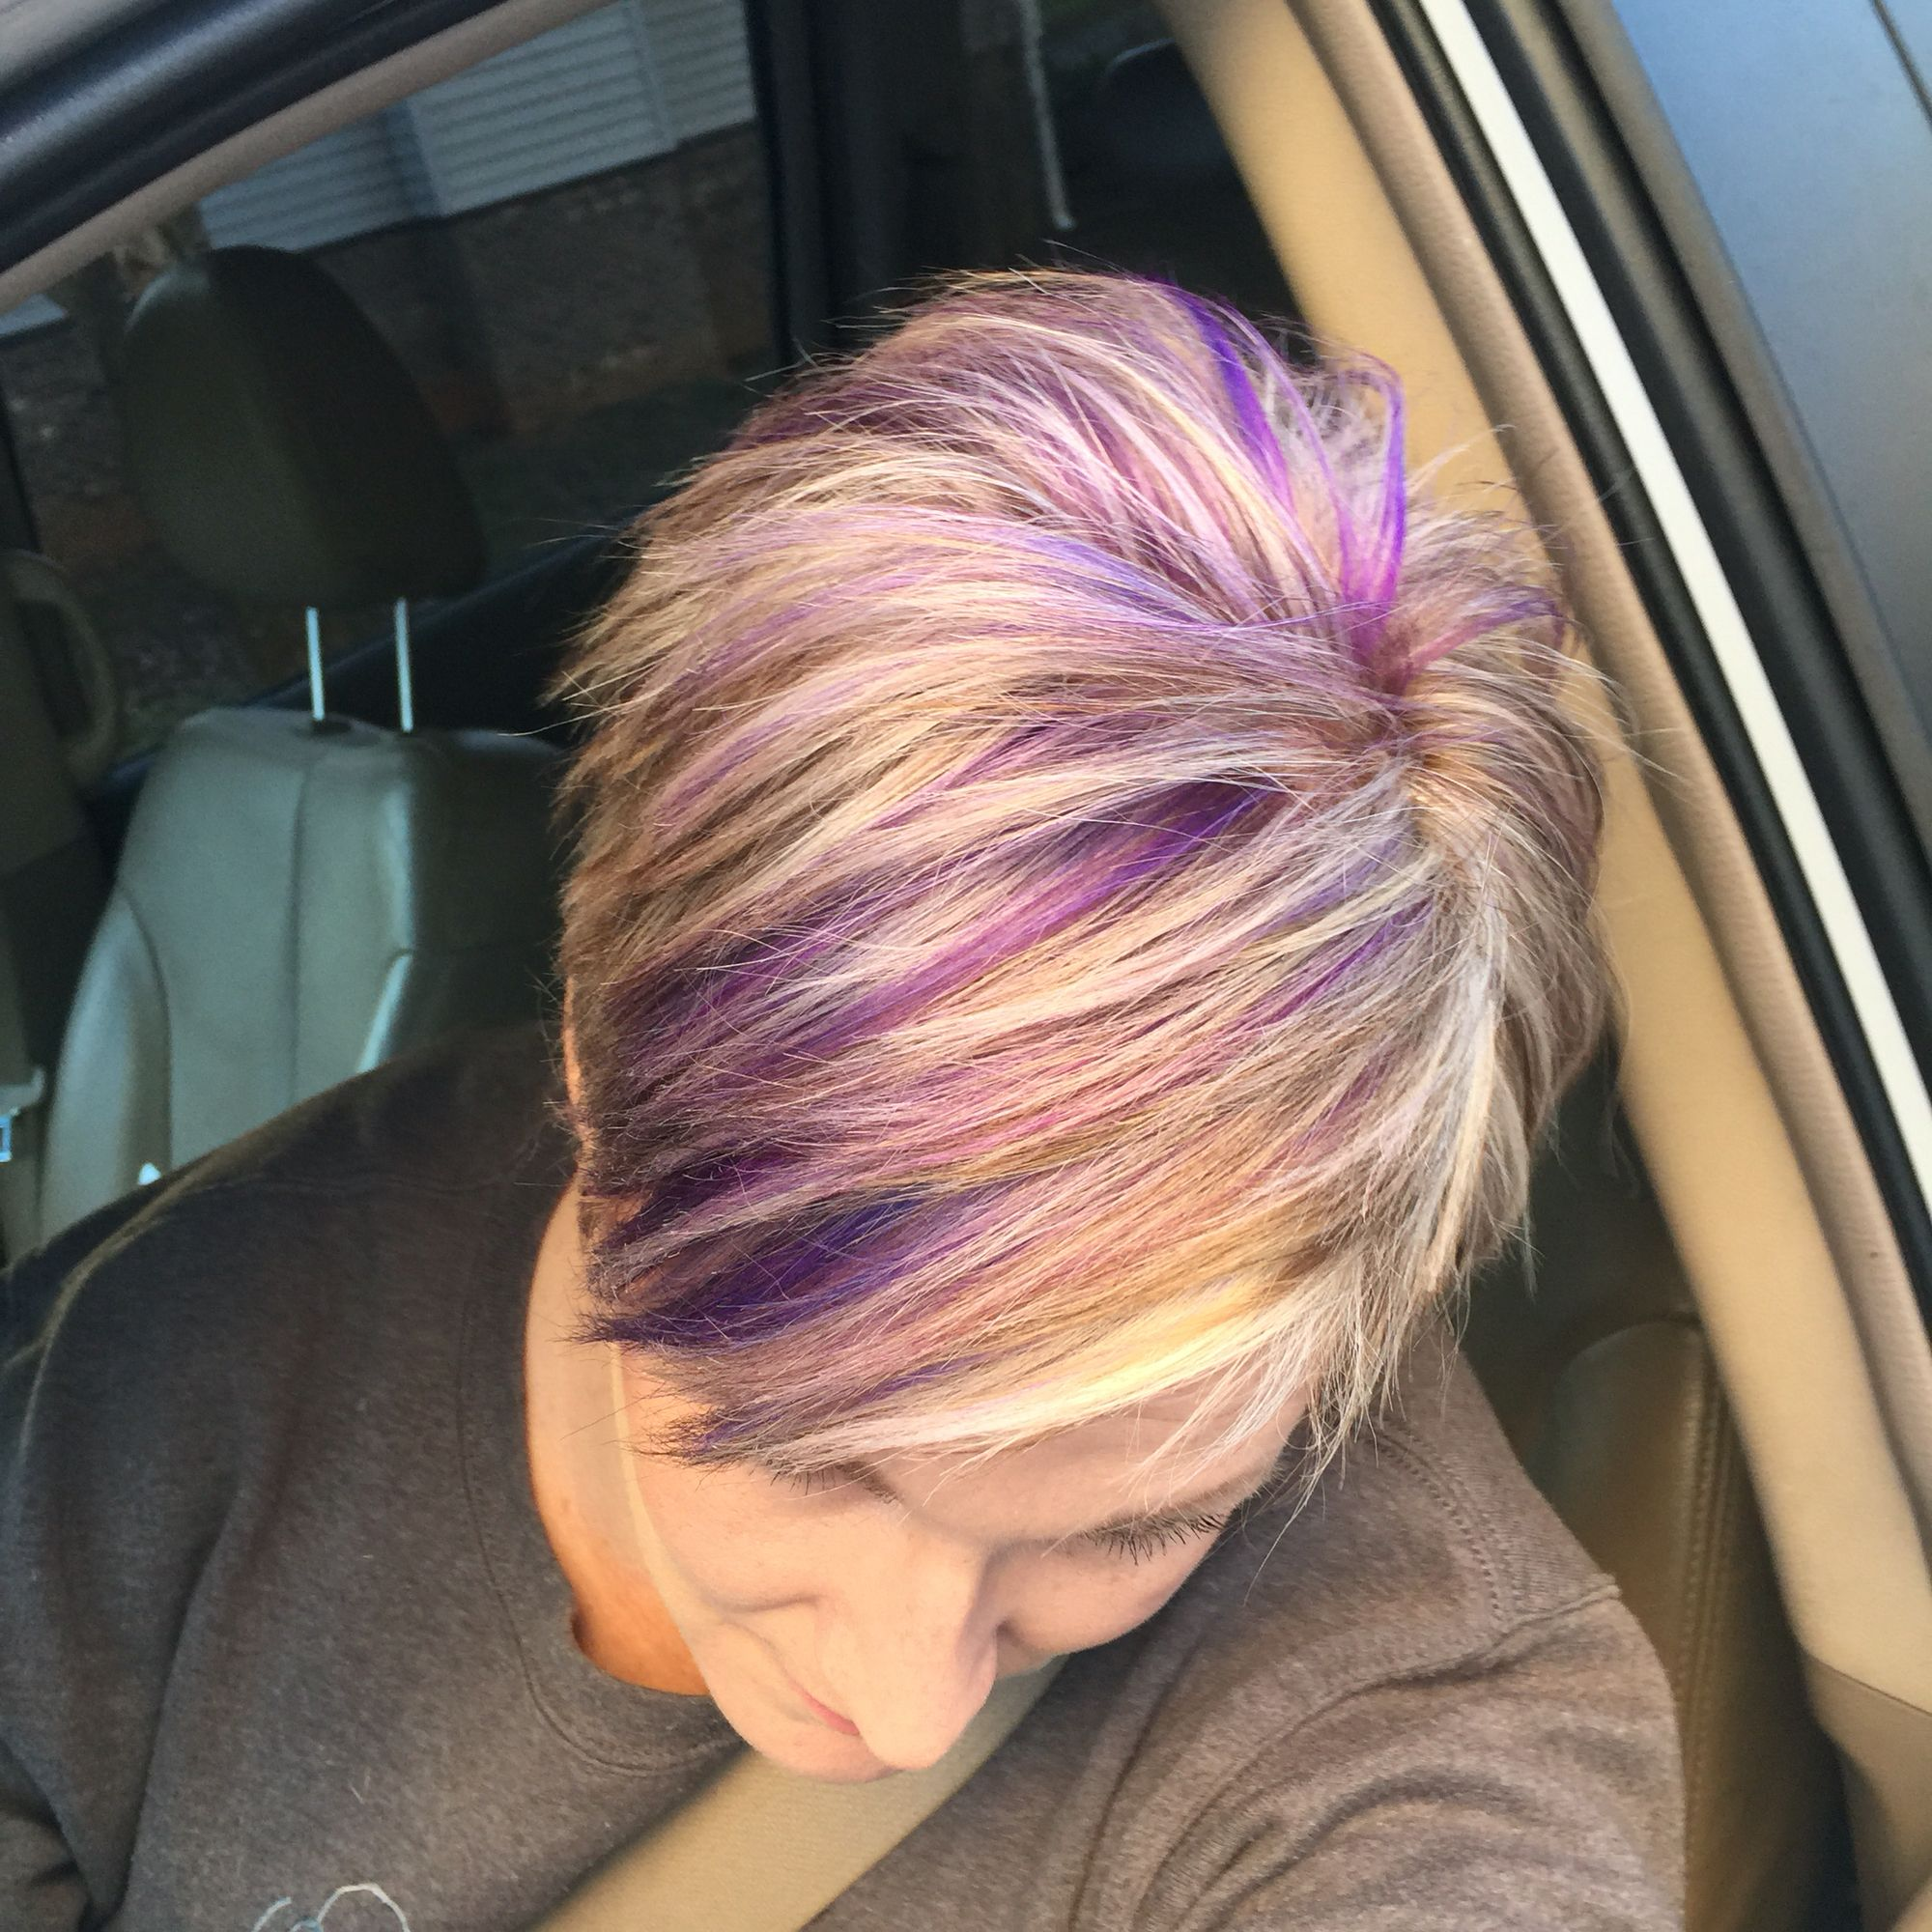 Blonde pixie haircut with purple and fuchsia highlights